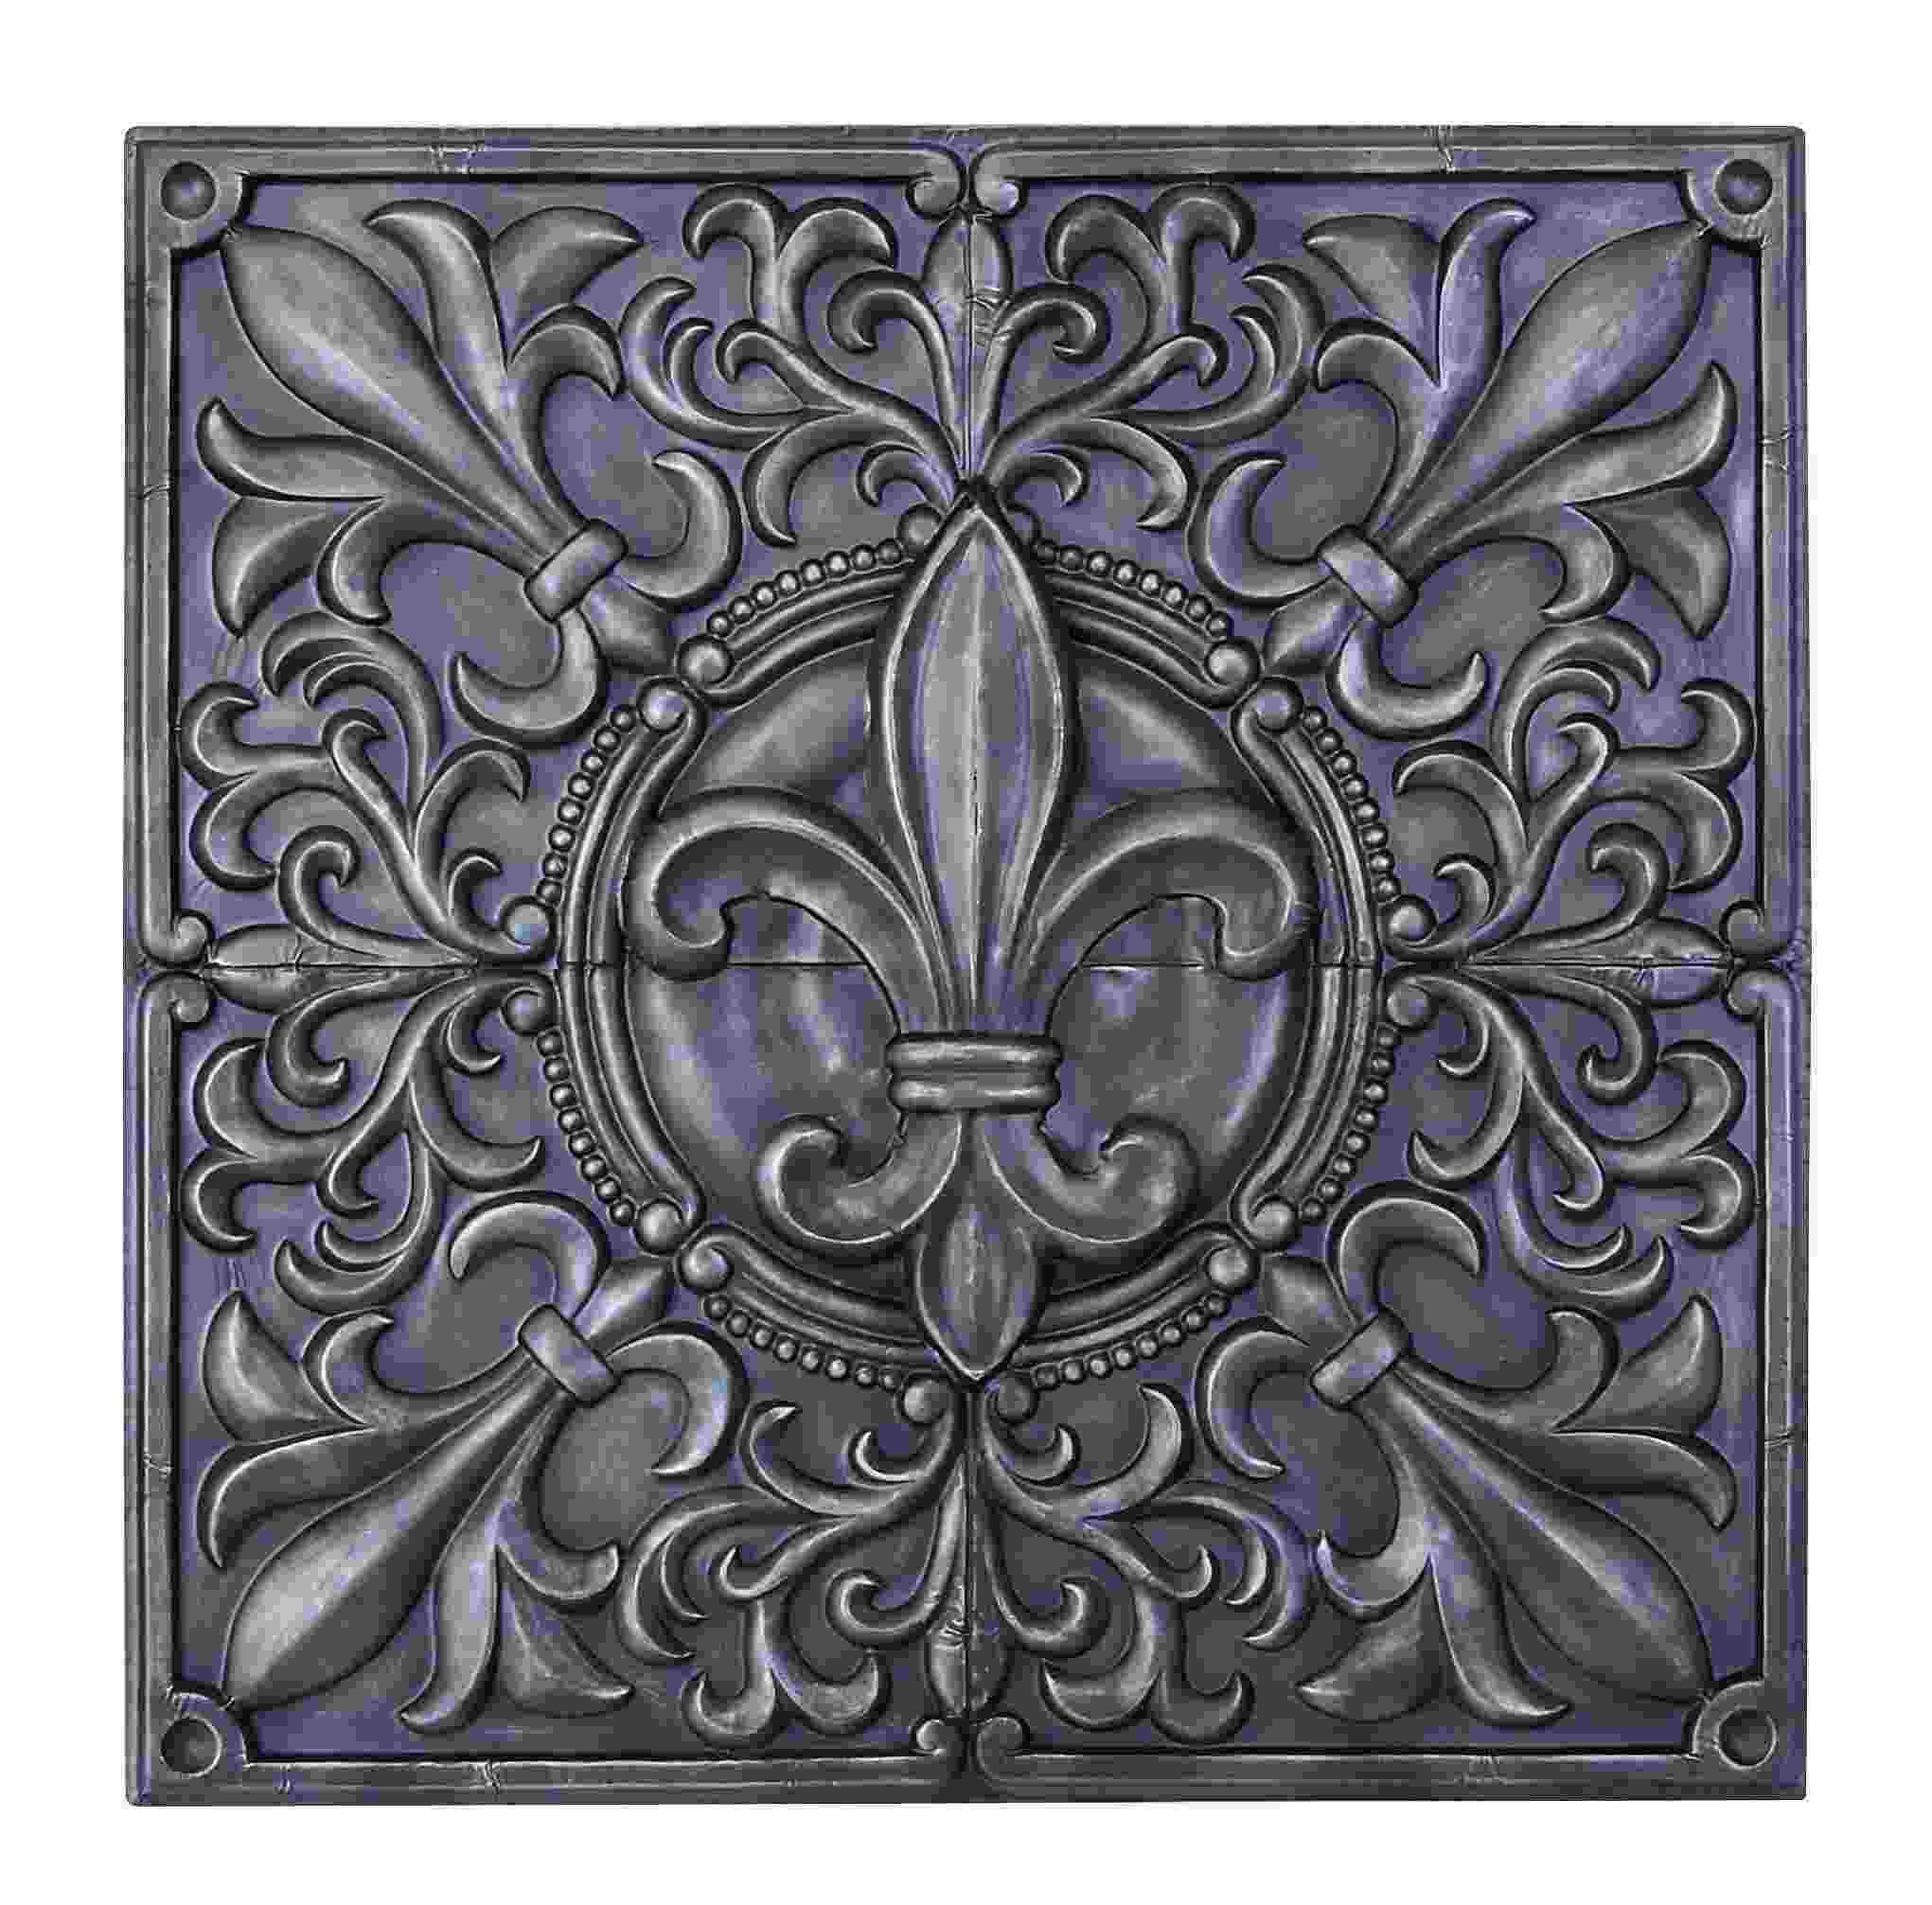 Square Metal Wall Art Pewter Fleur De Lis Square Metal Wall Intended For Best And Newest Square Metal Wall Art (View 7 of 20)